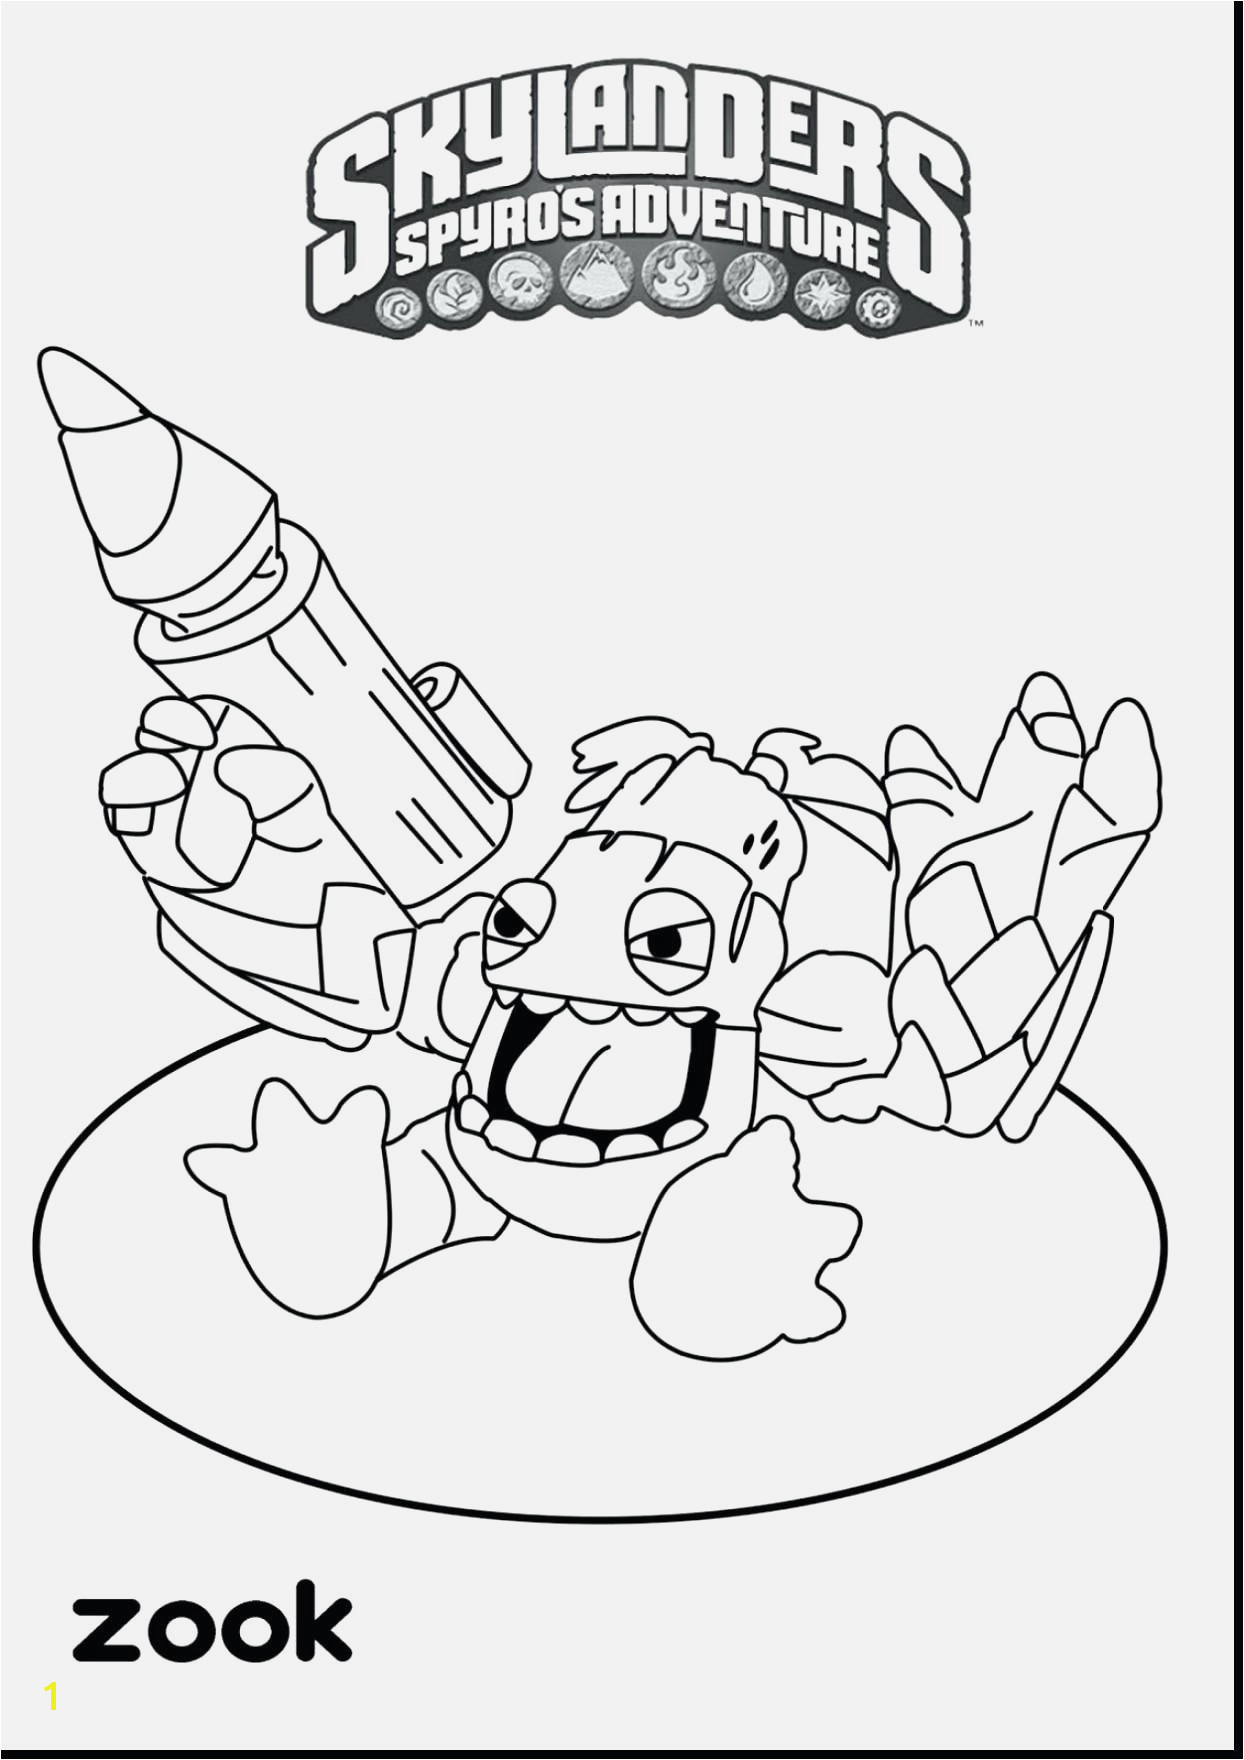 Friendship Coloring Pages Free Print Thank You Coloring Pages Gallery thephotosync Friendship Coloring Pages Elegant